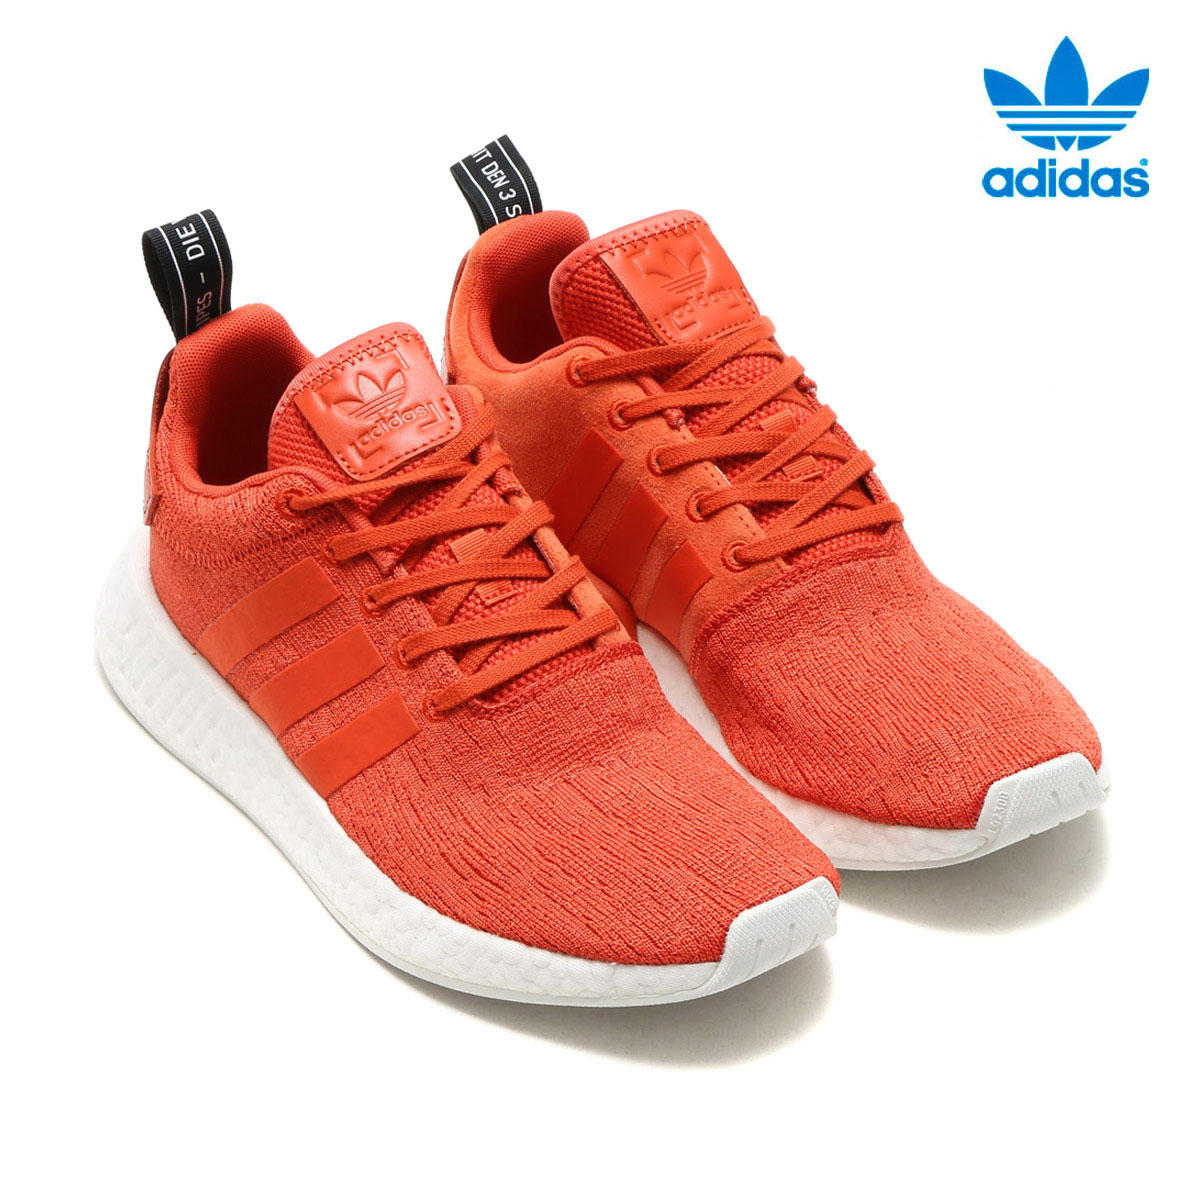 low priced 5eb95 dce52 adidas Originals NMD R2 (Adidas originals nomad) (FUTURE HARVEST/FUTURE  HARVEST) 17FW-I